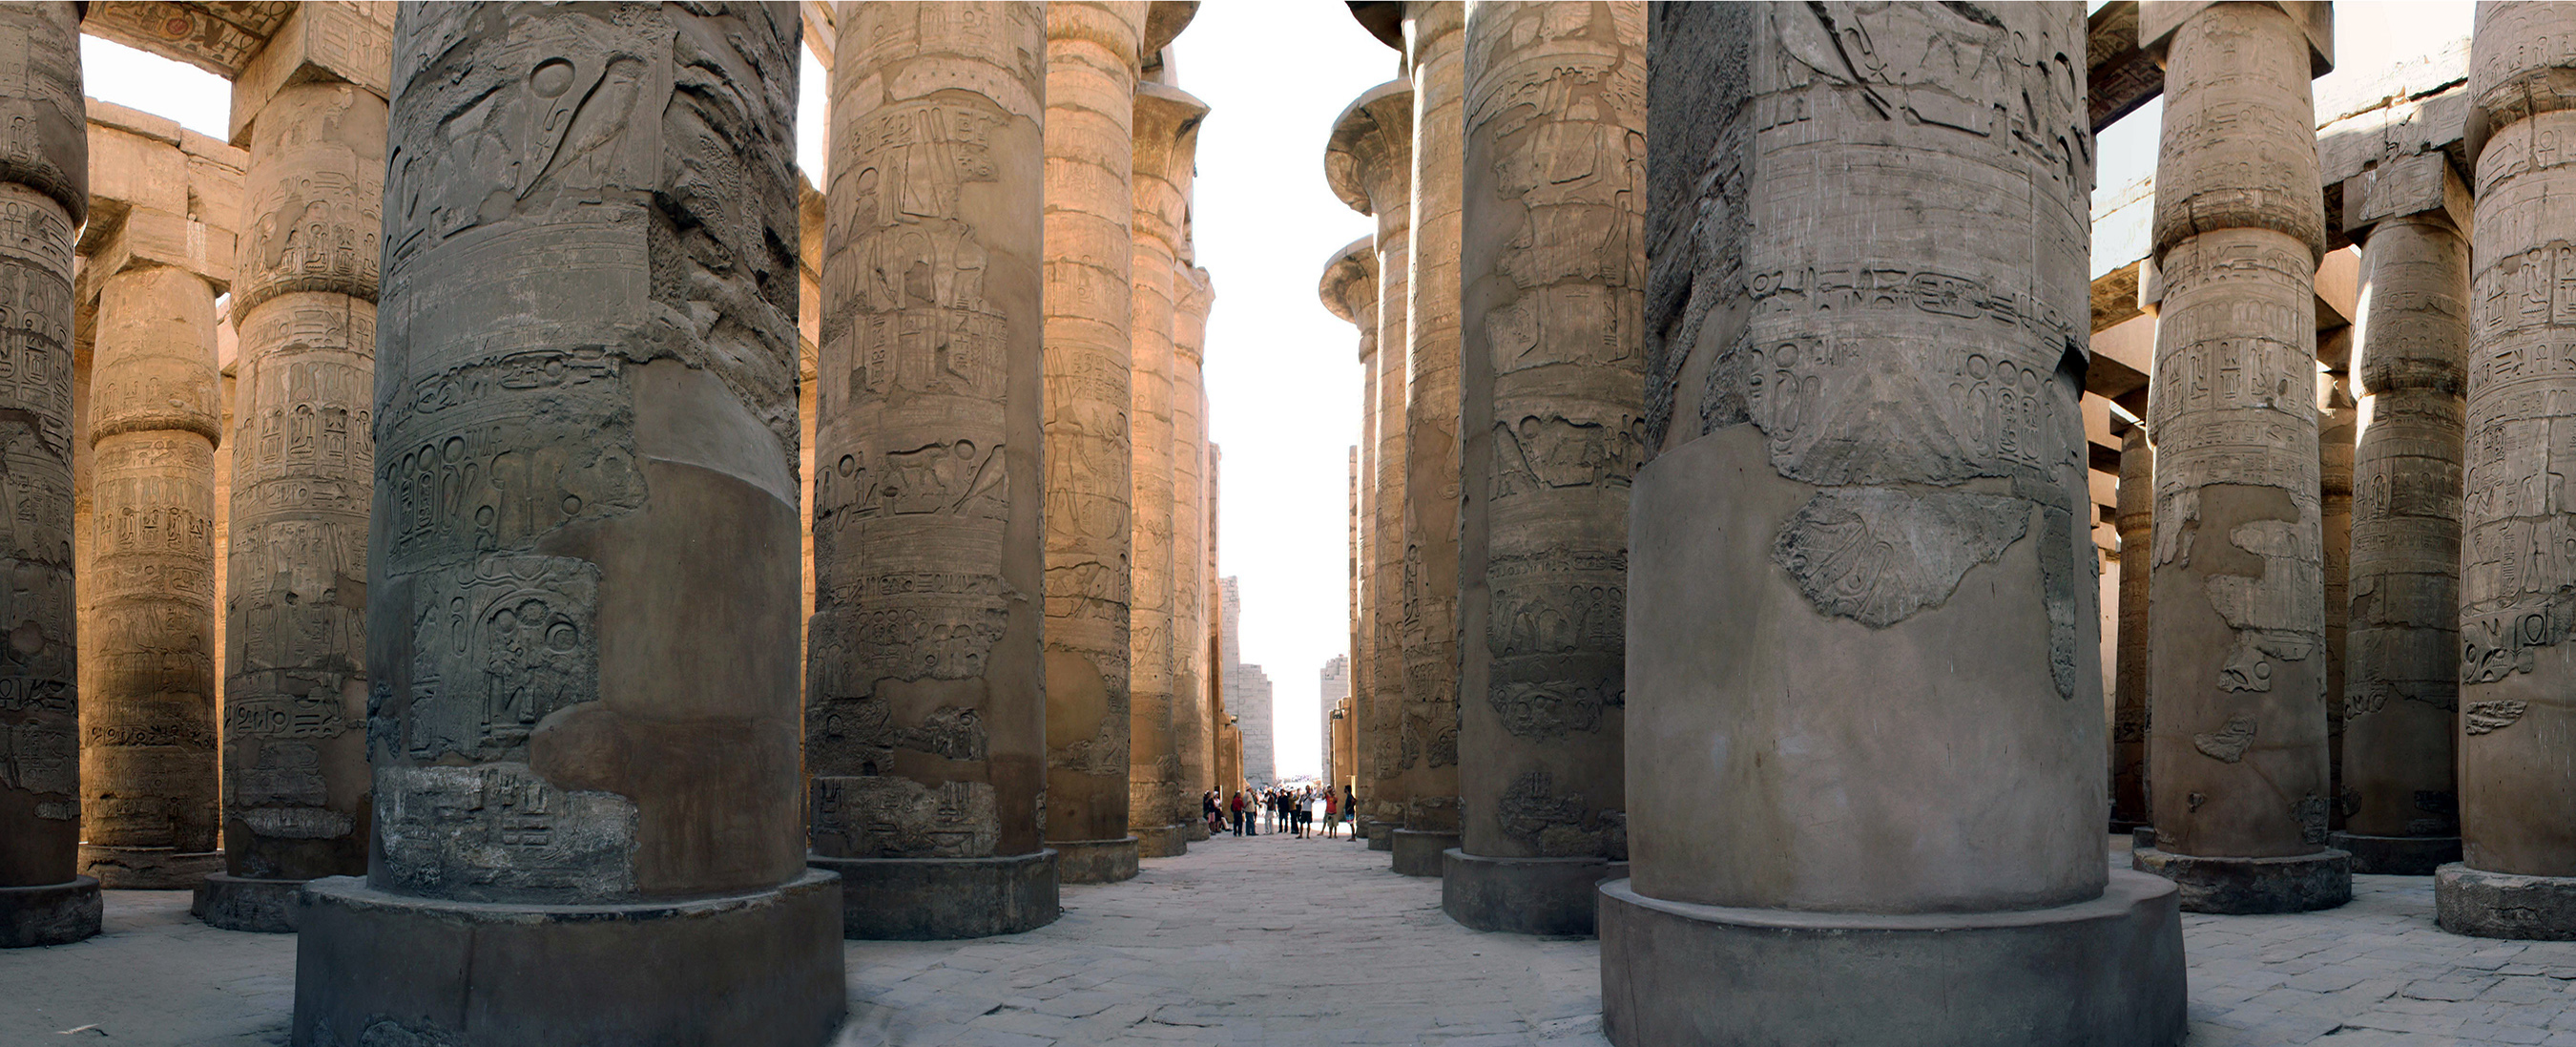 Temple Of Amun Re And The Hypostyle Hall Karnak